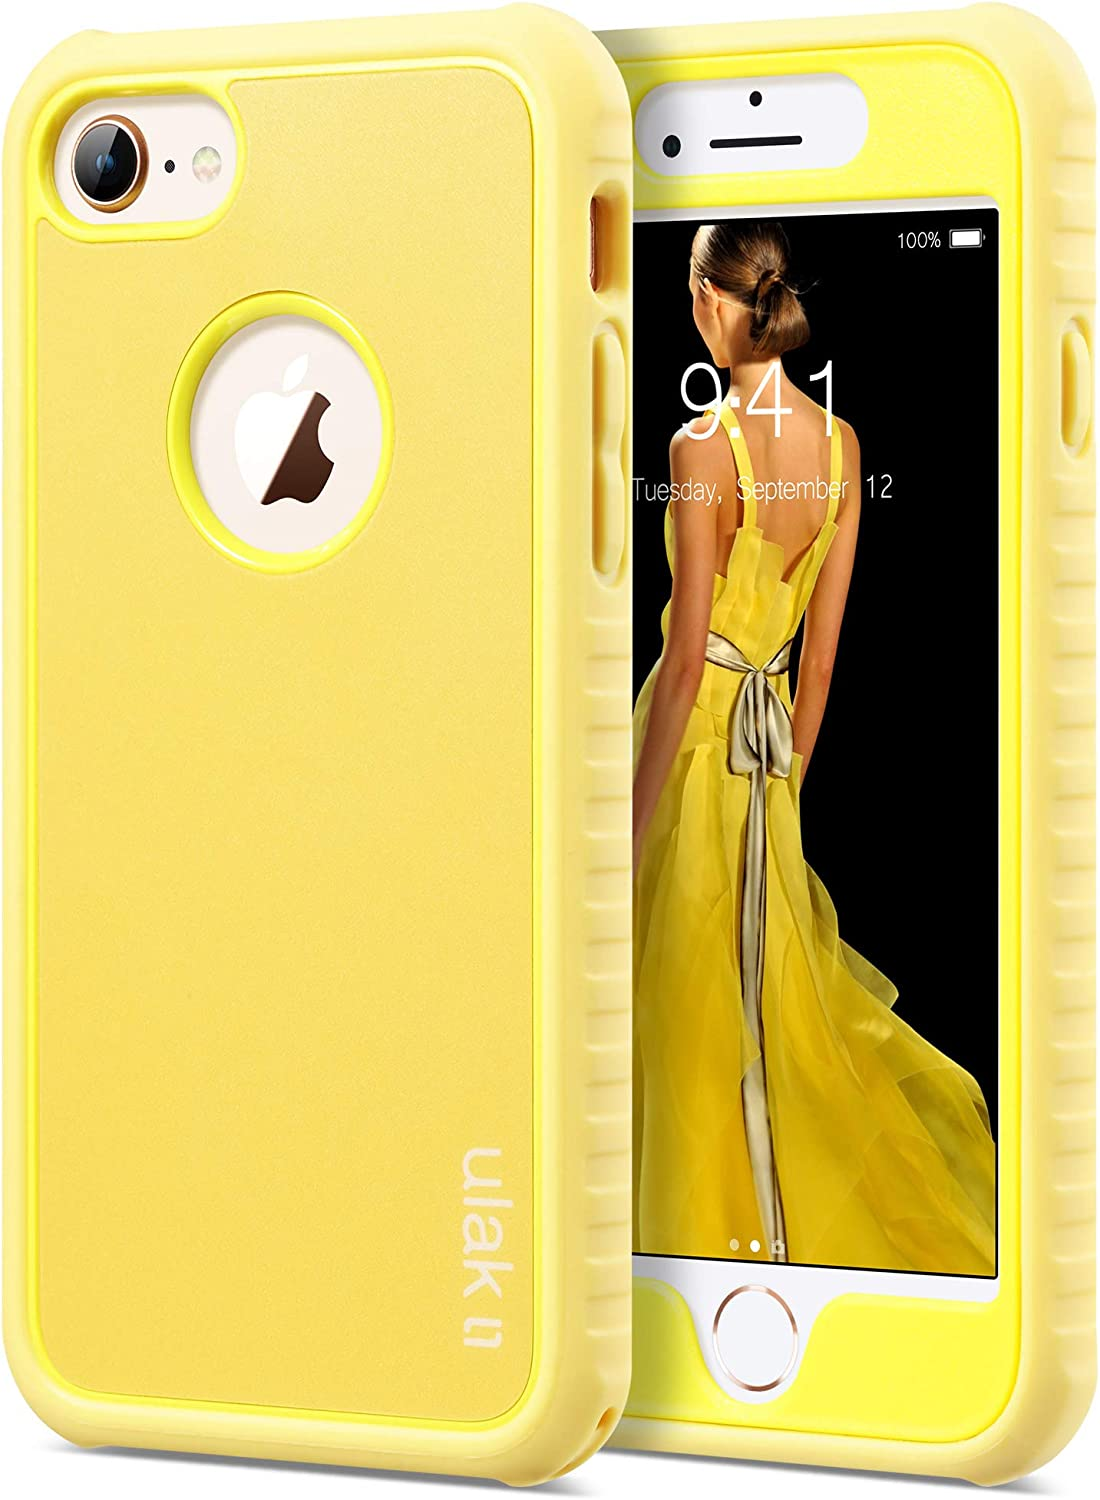 ULAK iPhone 8 & 7 Case Shock-Absorbing Flexible Durability TPU Bumper Case, Durable Anti-Slip, Front and Back Hard PC Defensive Protection Cover for Apple iPhone 7 4.7 inch,Yellow